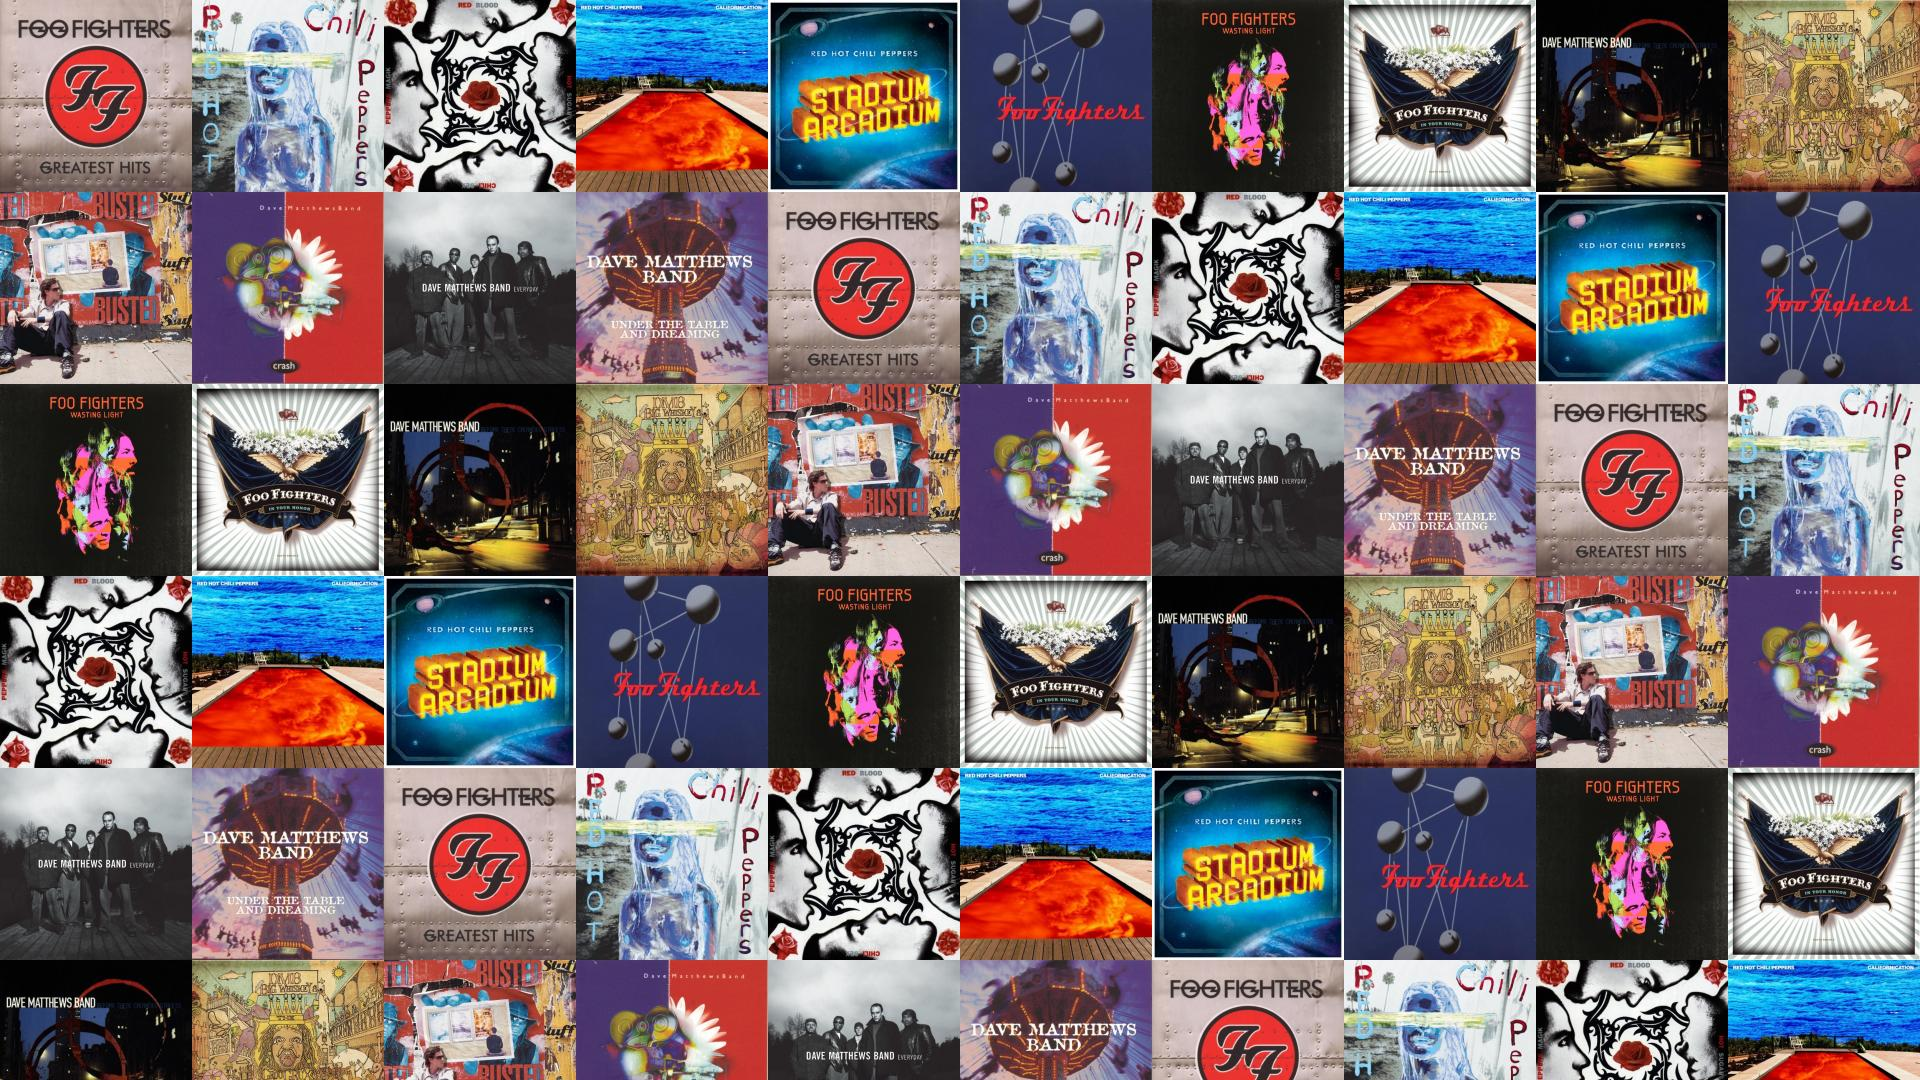 Foo Fighters Greatest Hits Red Hot Chilli Peppers Wallpaper